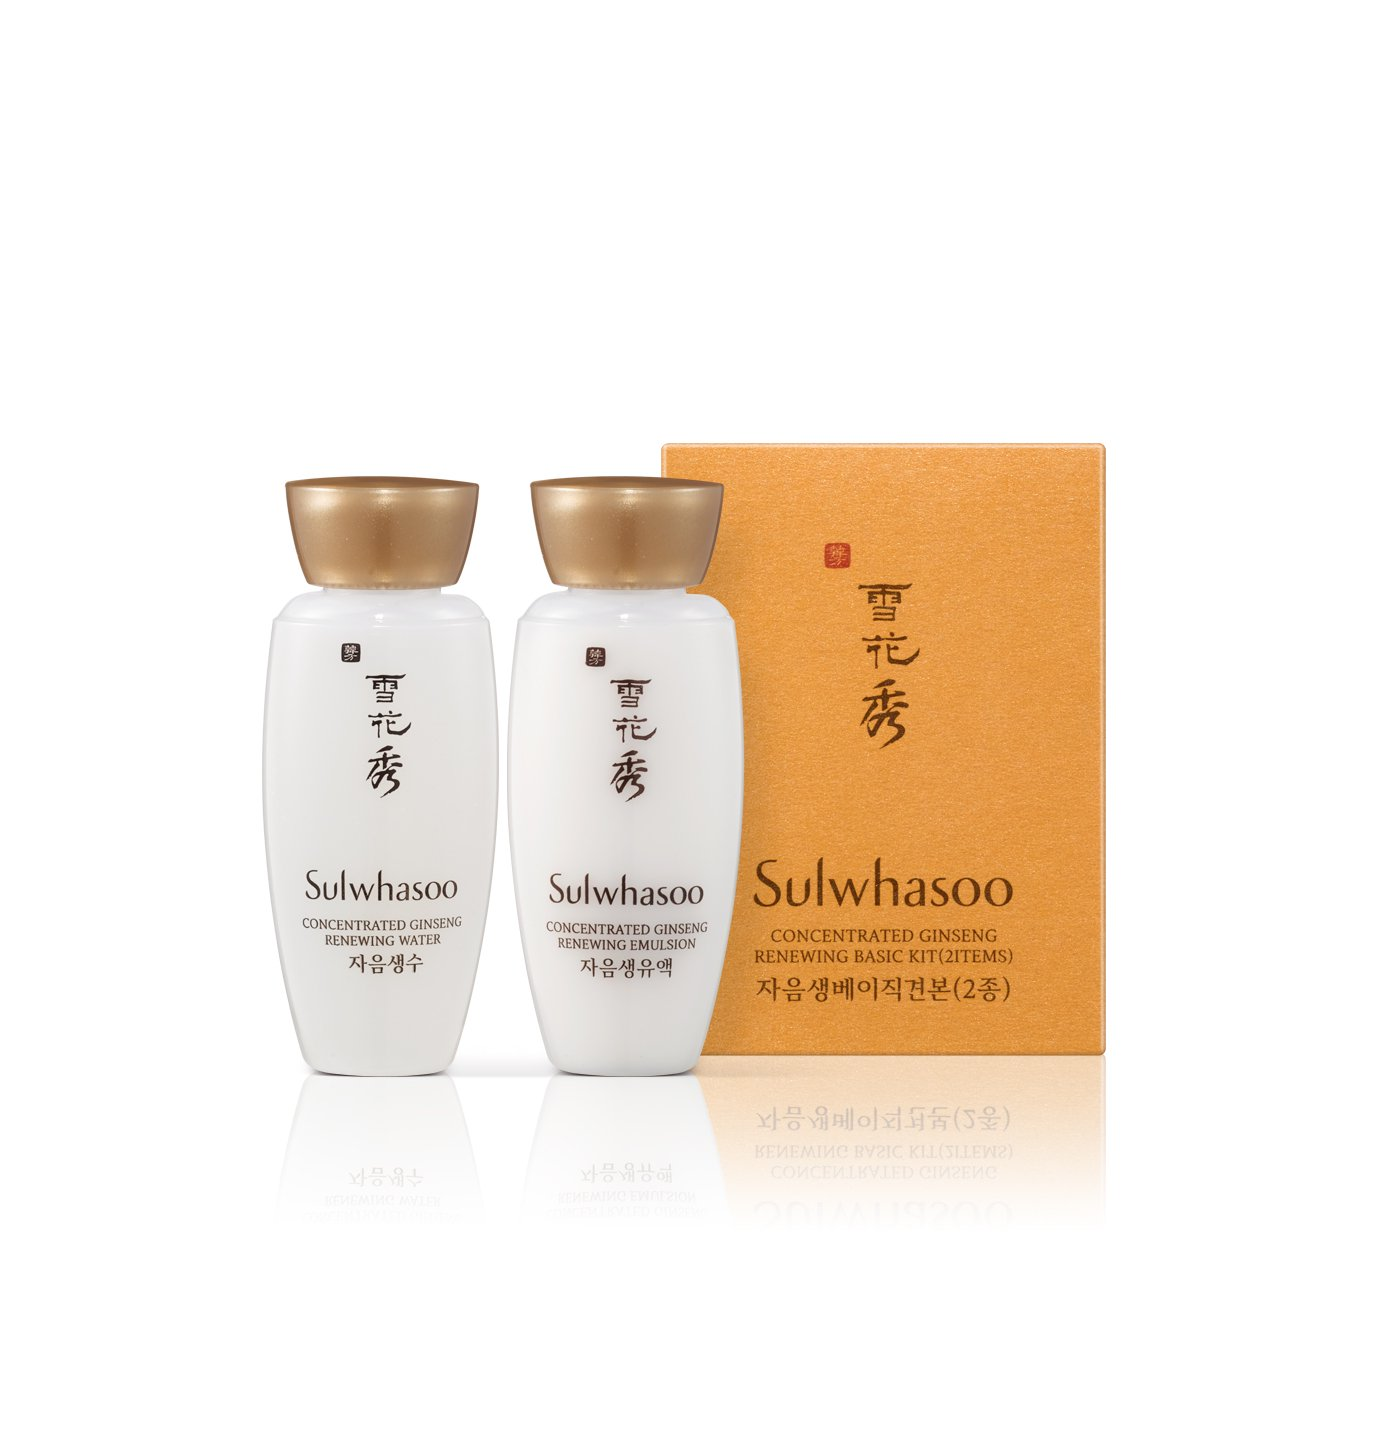 Free SULWHASOO Concentrated Ginseng Renewing Basic Kit with purchase of any 2 Sulwhasoo products